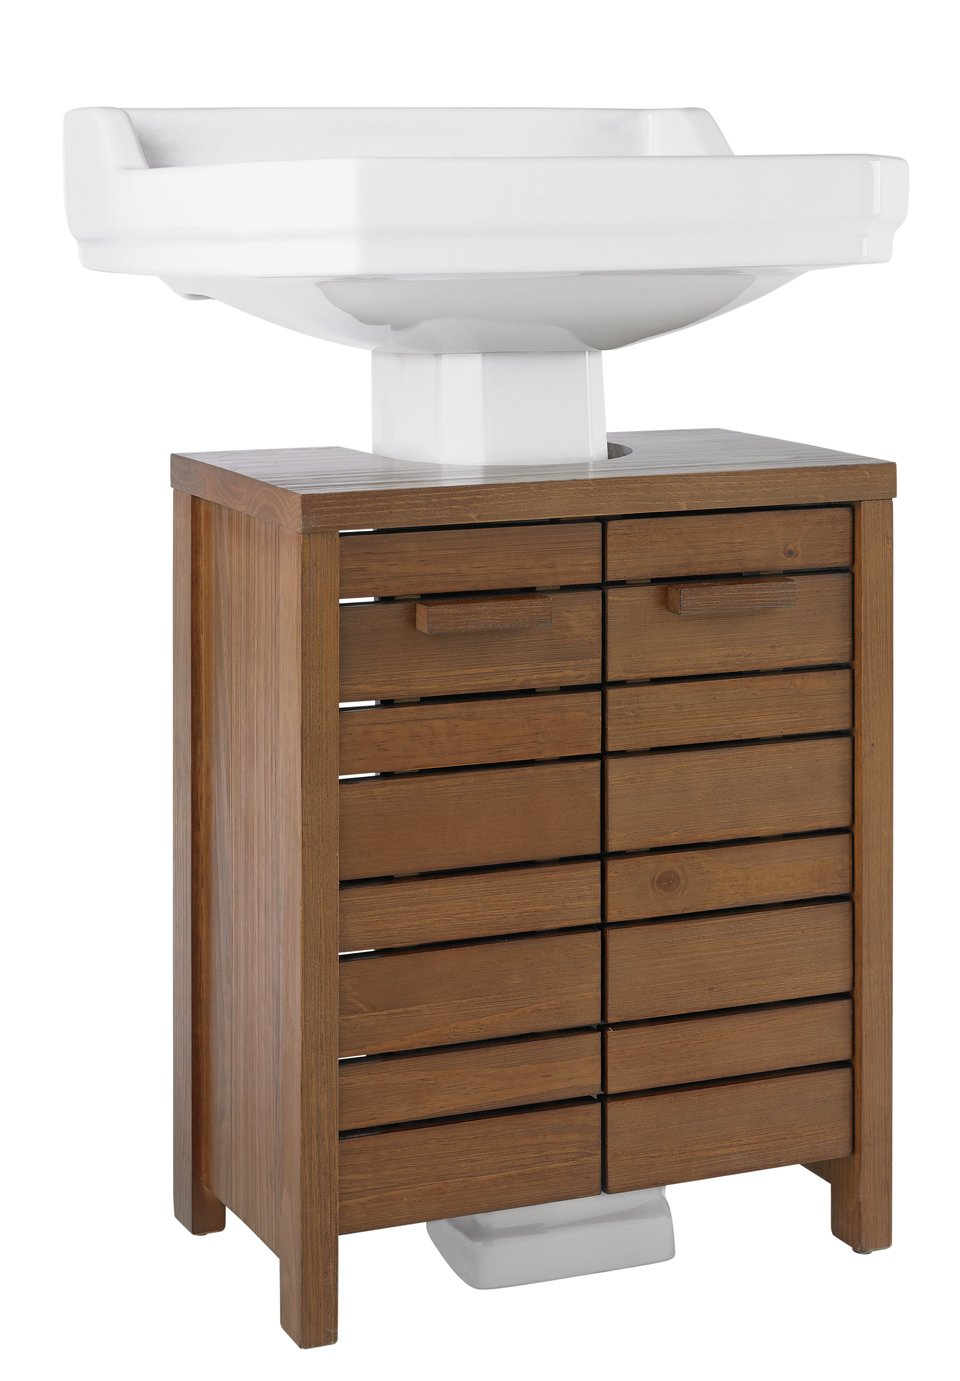 Argos Home Cranbrook Solid Pine Undersink Storage review